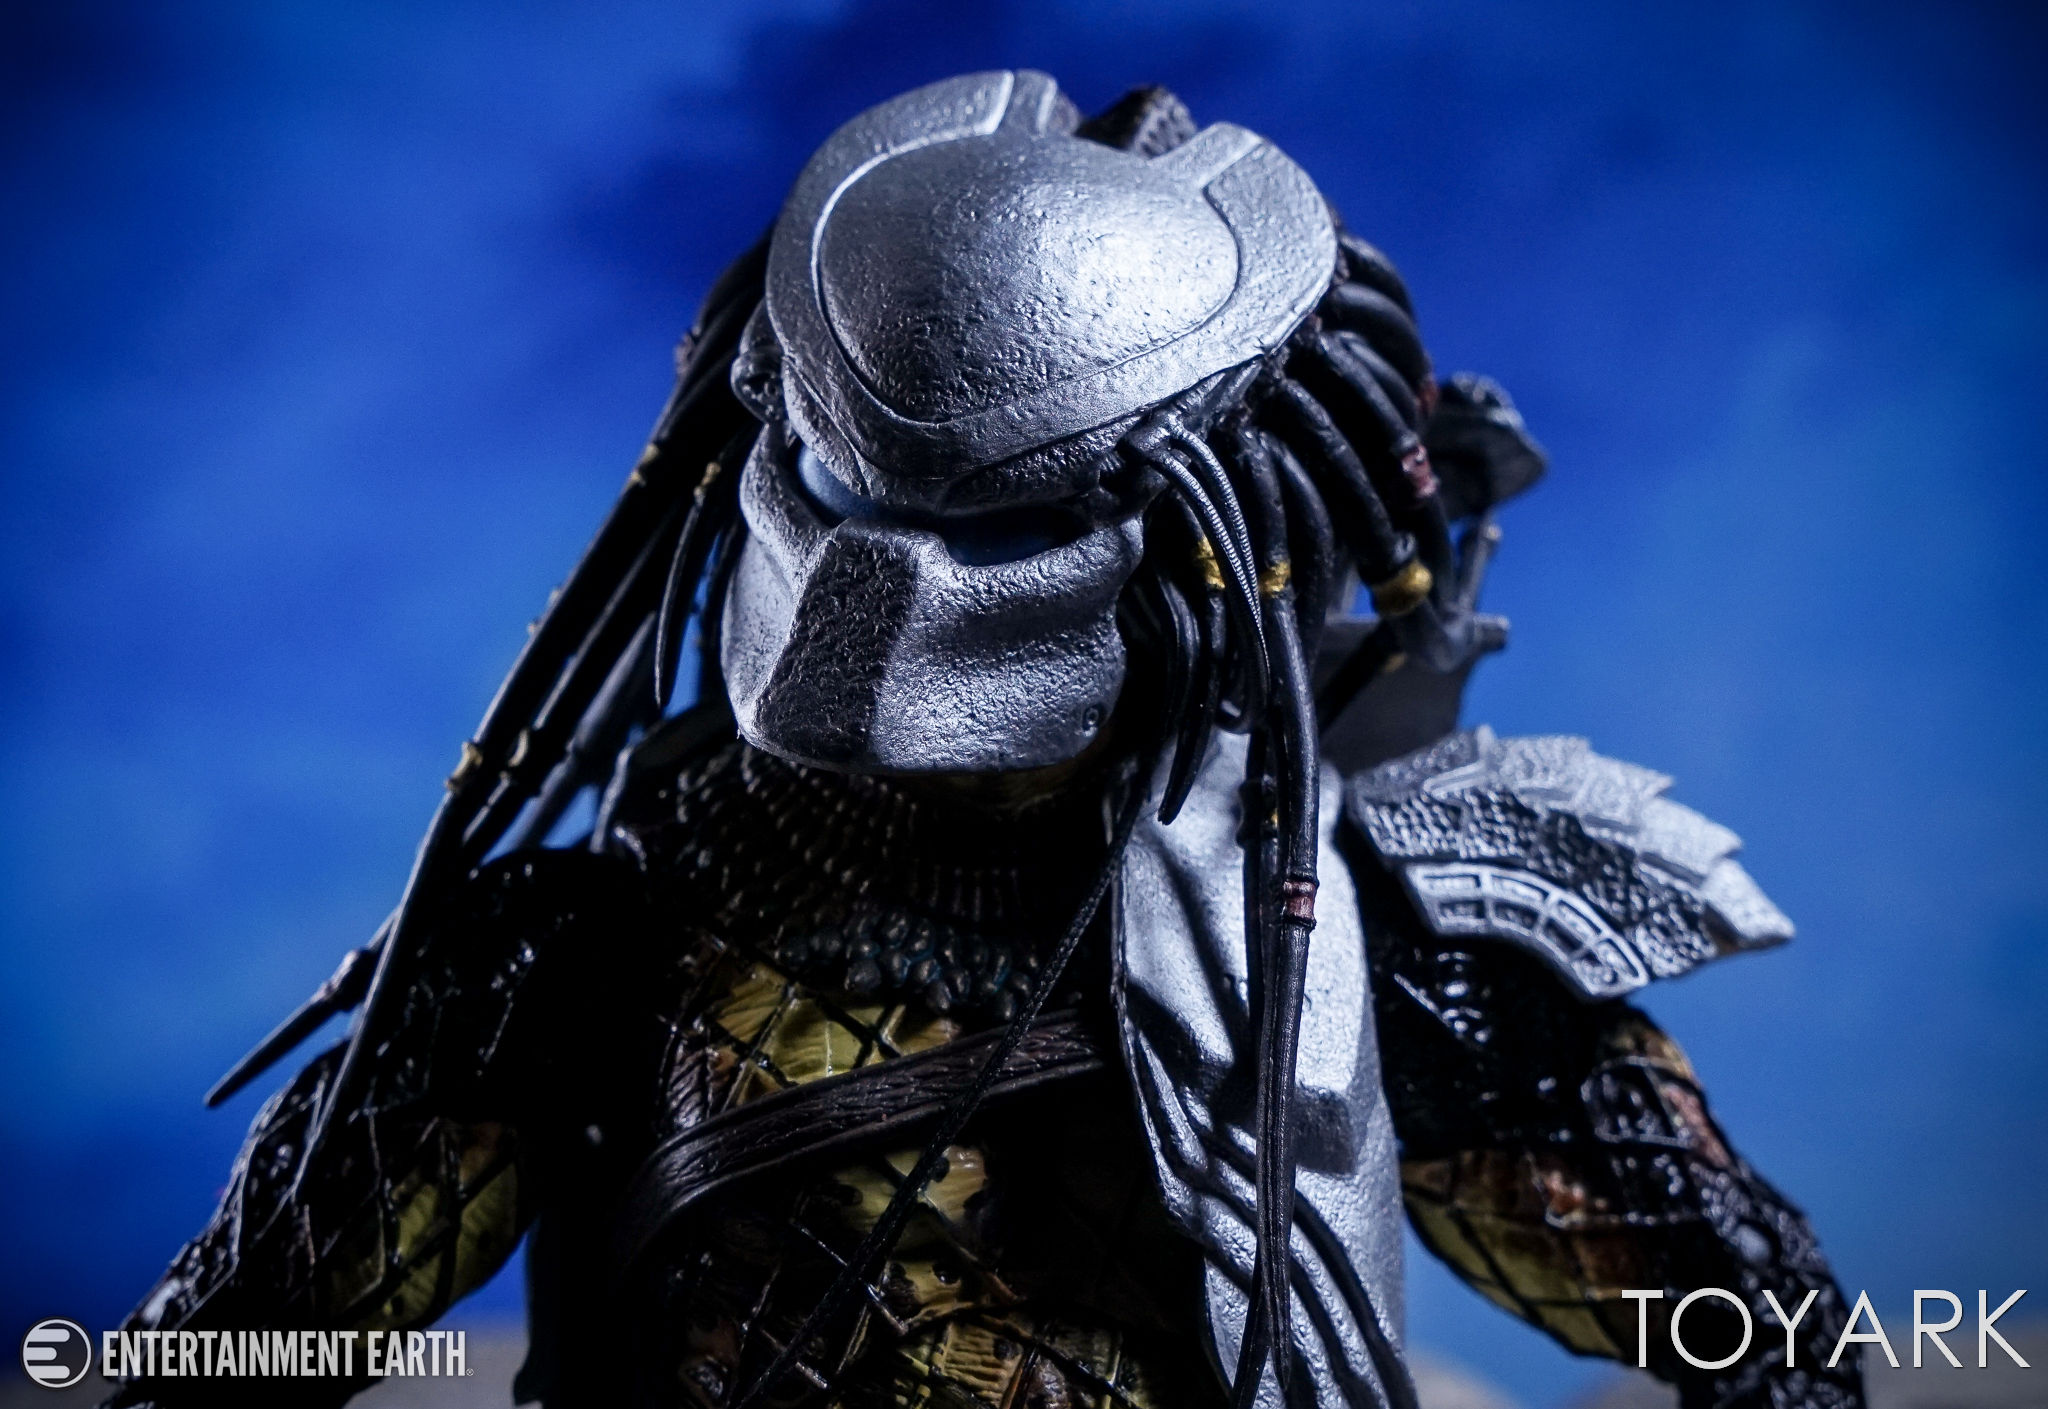 http://news.toyark.com/wp-content/uploads/sites/4/2017/04/NECA-Youngblood-Predator-039.jpg